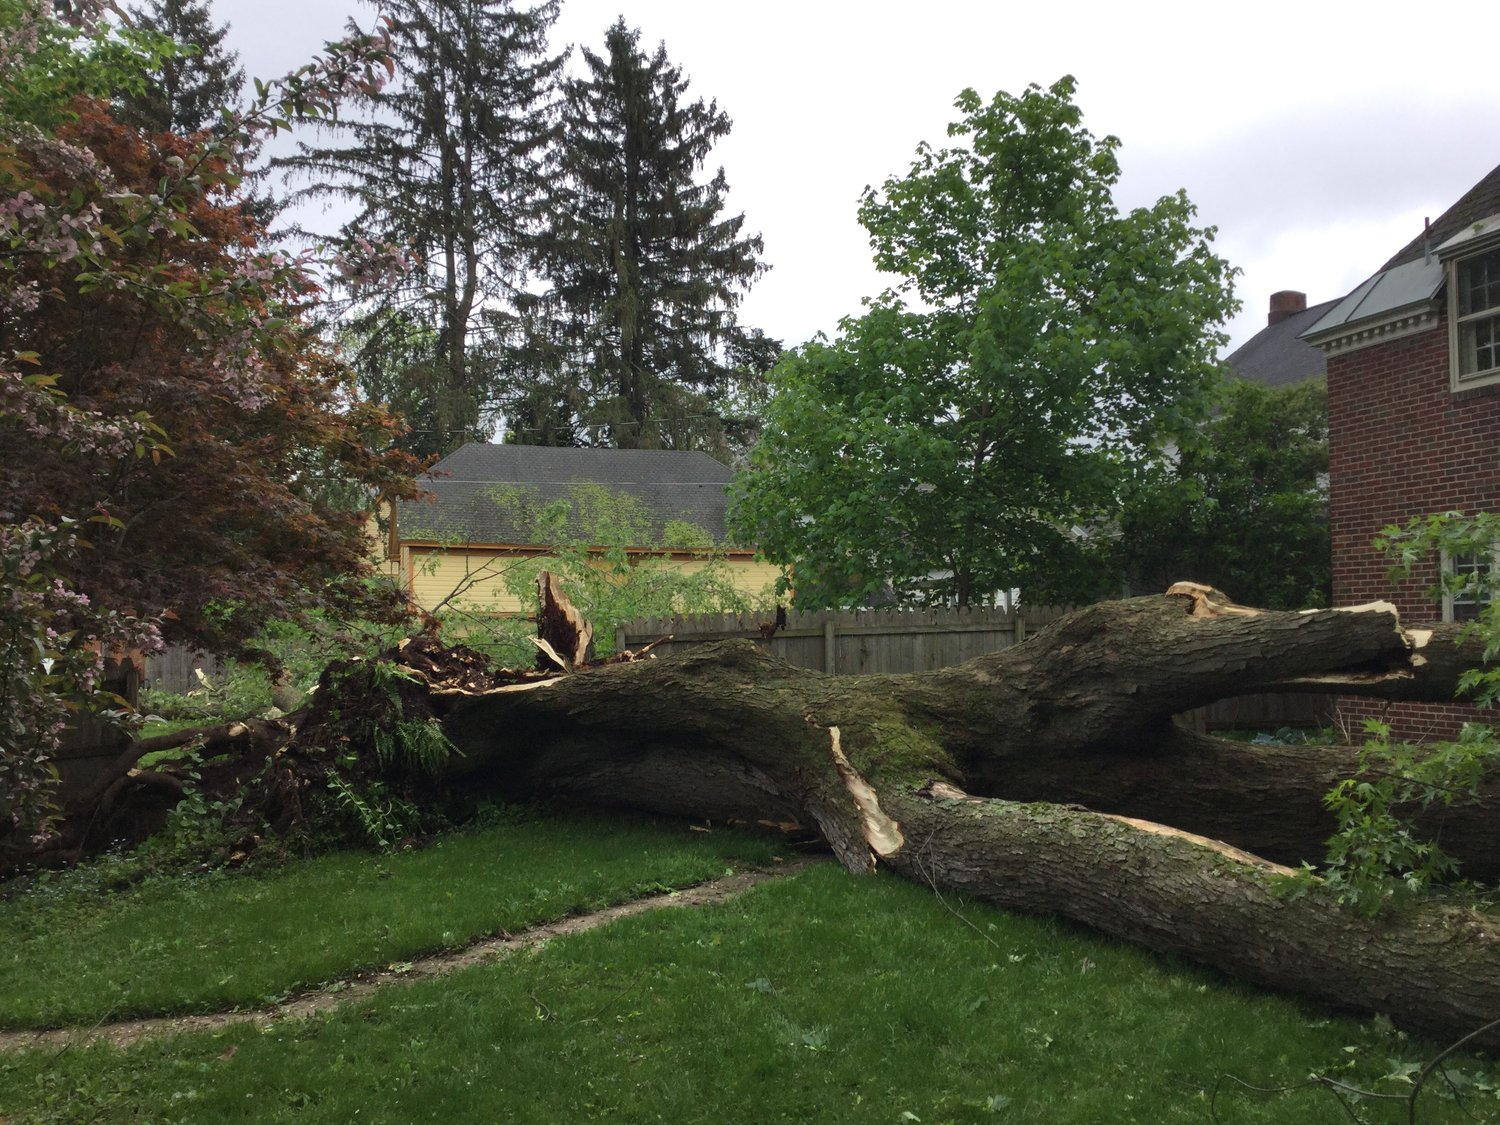 CUT OFF AT THE TRUNK — Residents said this large, tree came crashing down during Thursday's storm. One half fell in a neighbor's yard on Maple Street, while the other half knocked off the corner bricks at 302 Maple St.